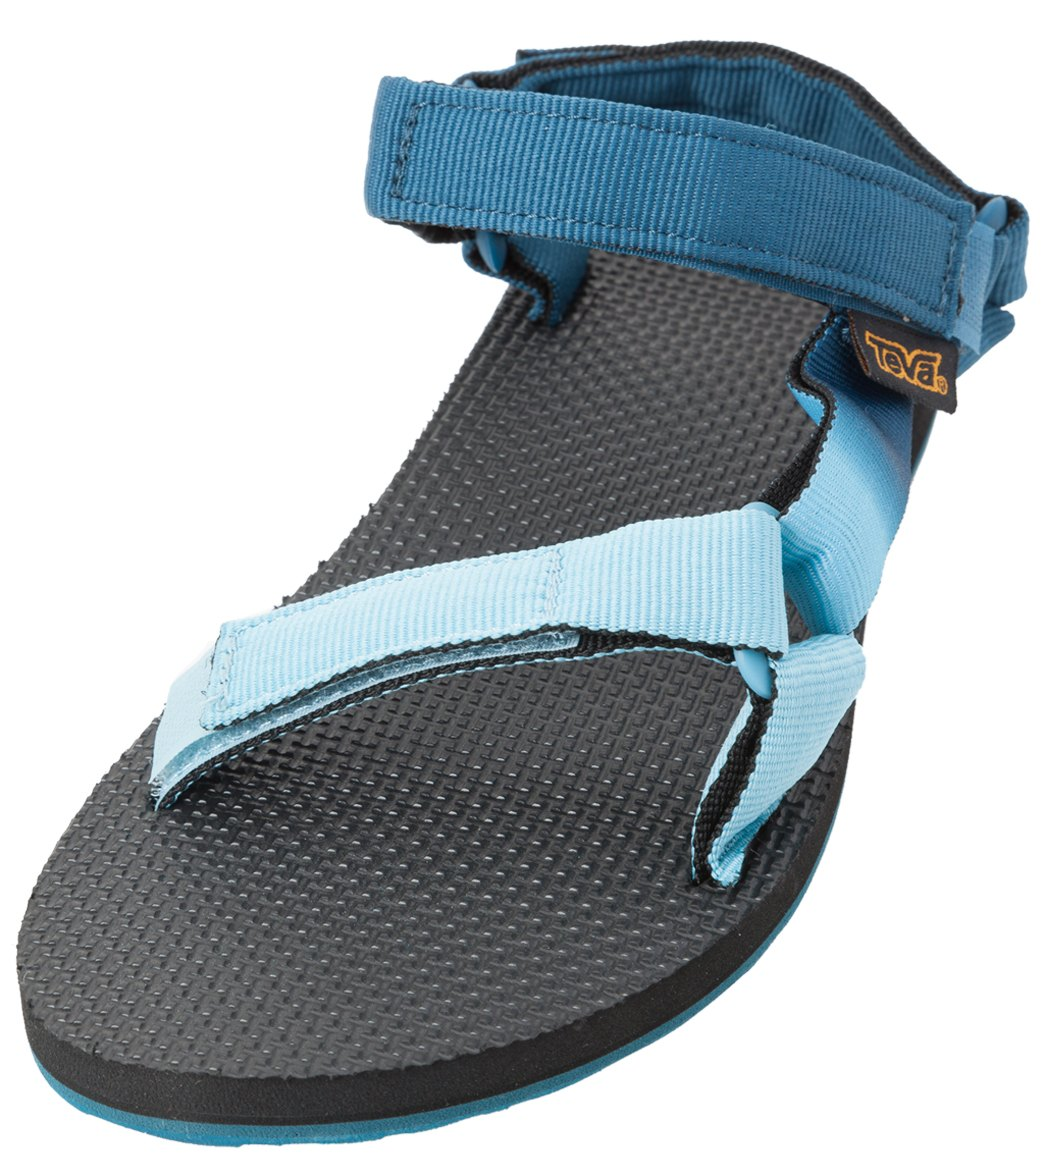 39ea5d2f0458 Teva Women s Original Universal Gradient Sandal at SwimOutlet.com ...